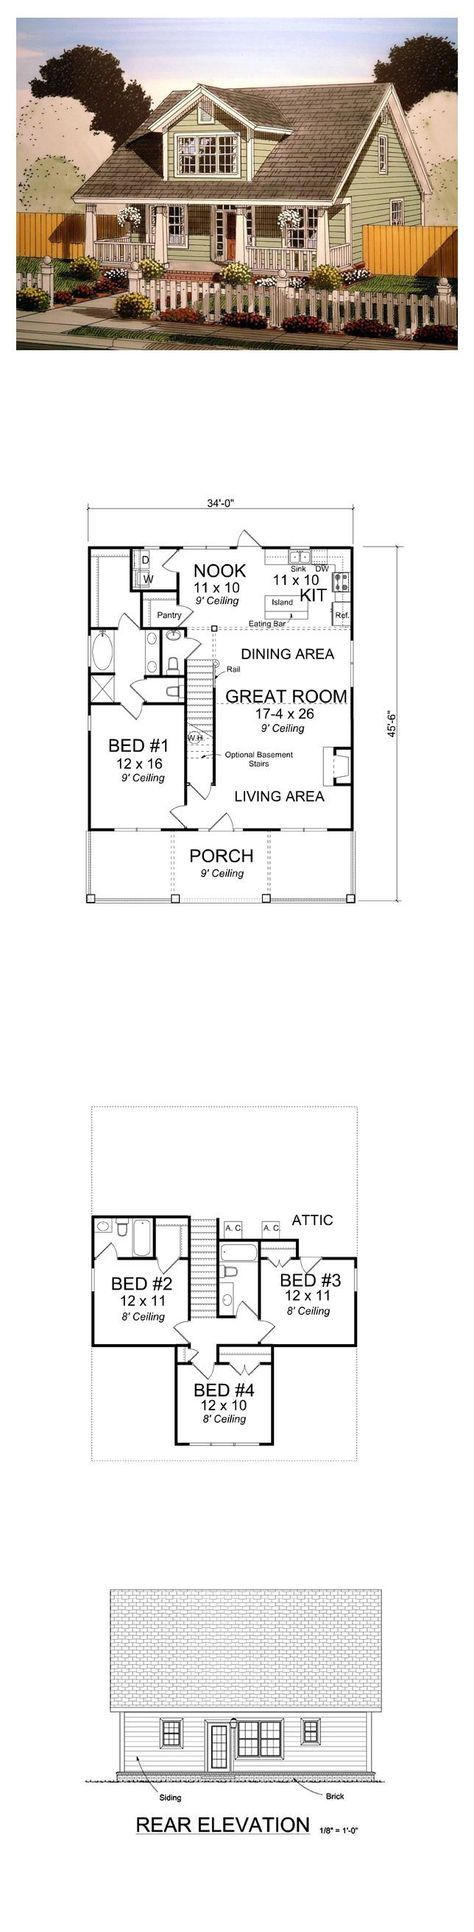 1000 ideas about cape cod bathroom on pinterest small for Small cape cod house plans under 1000 sq ft